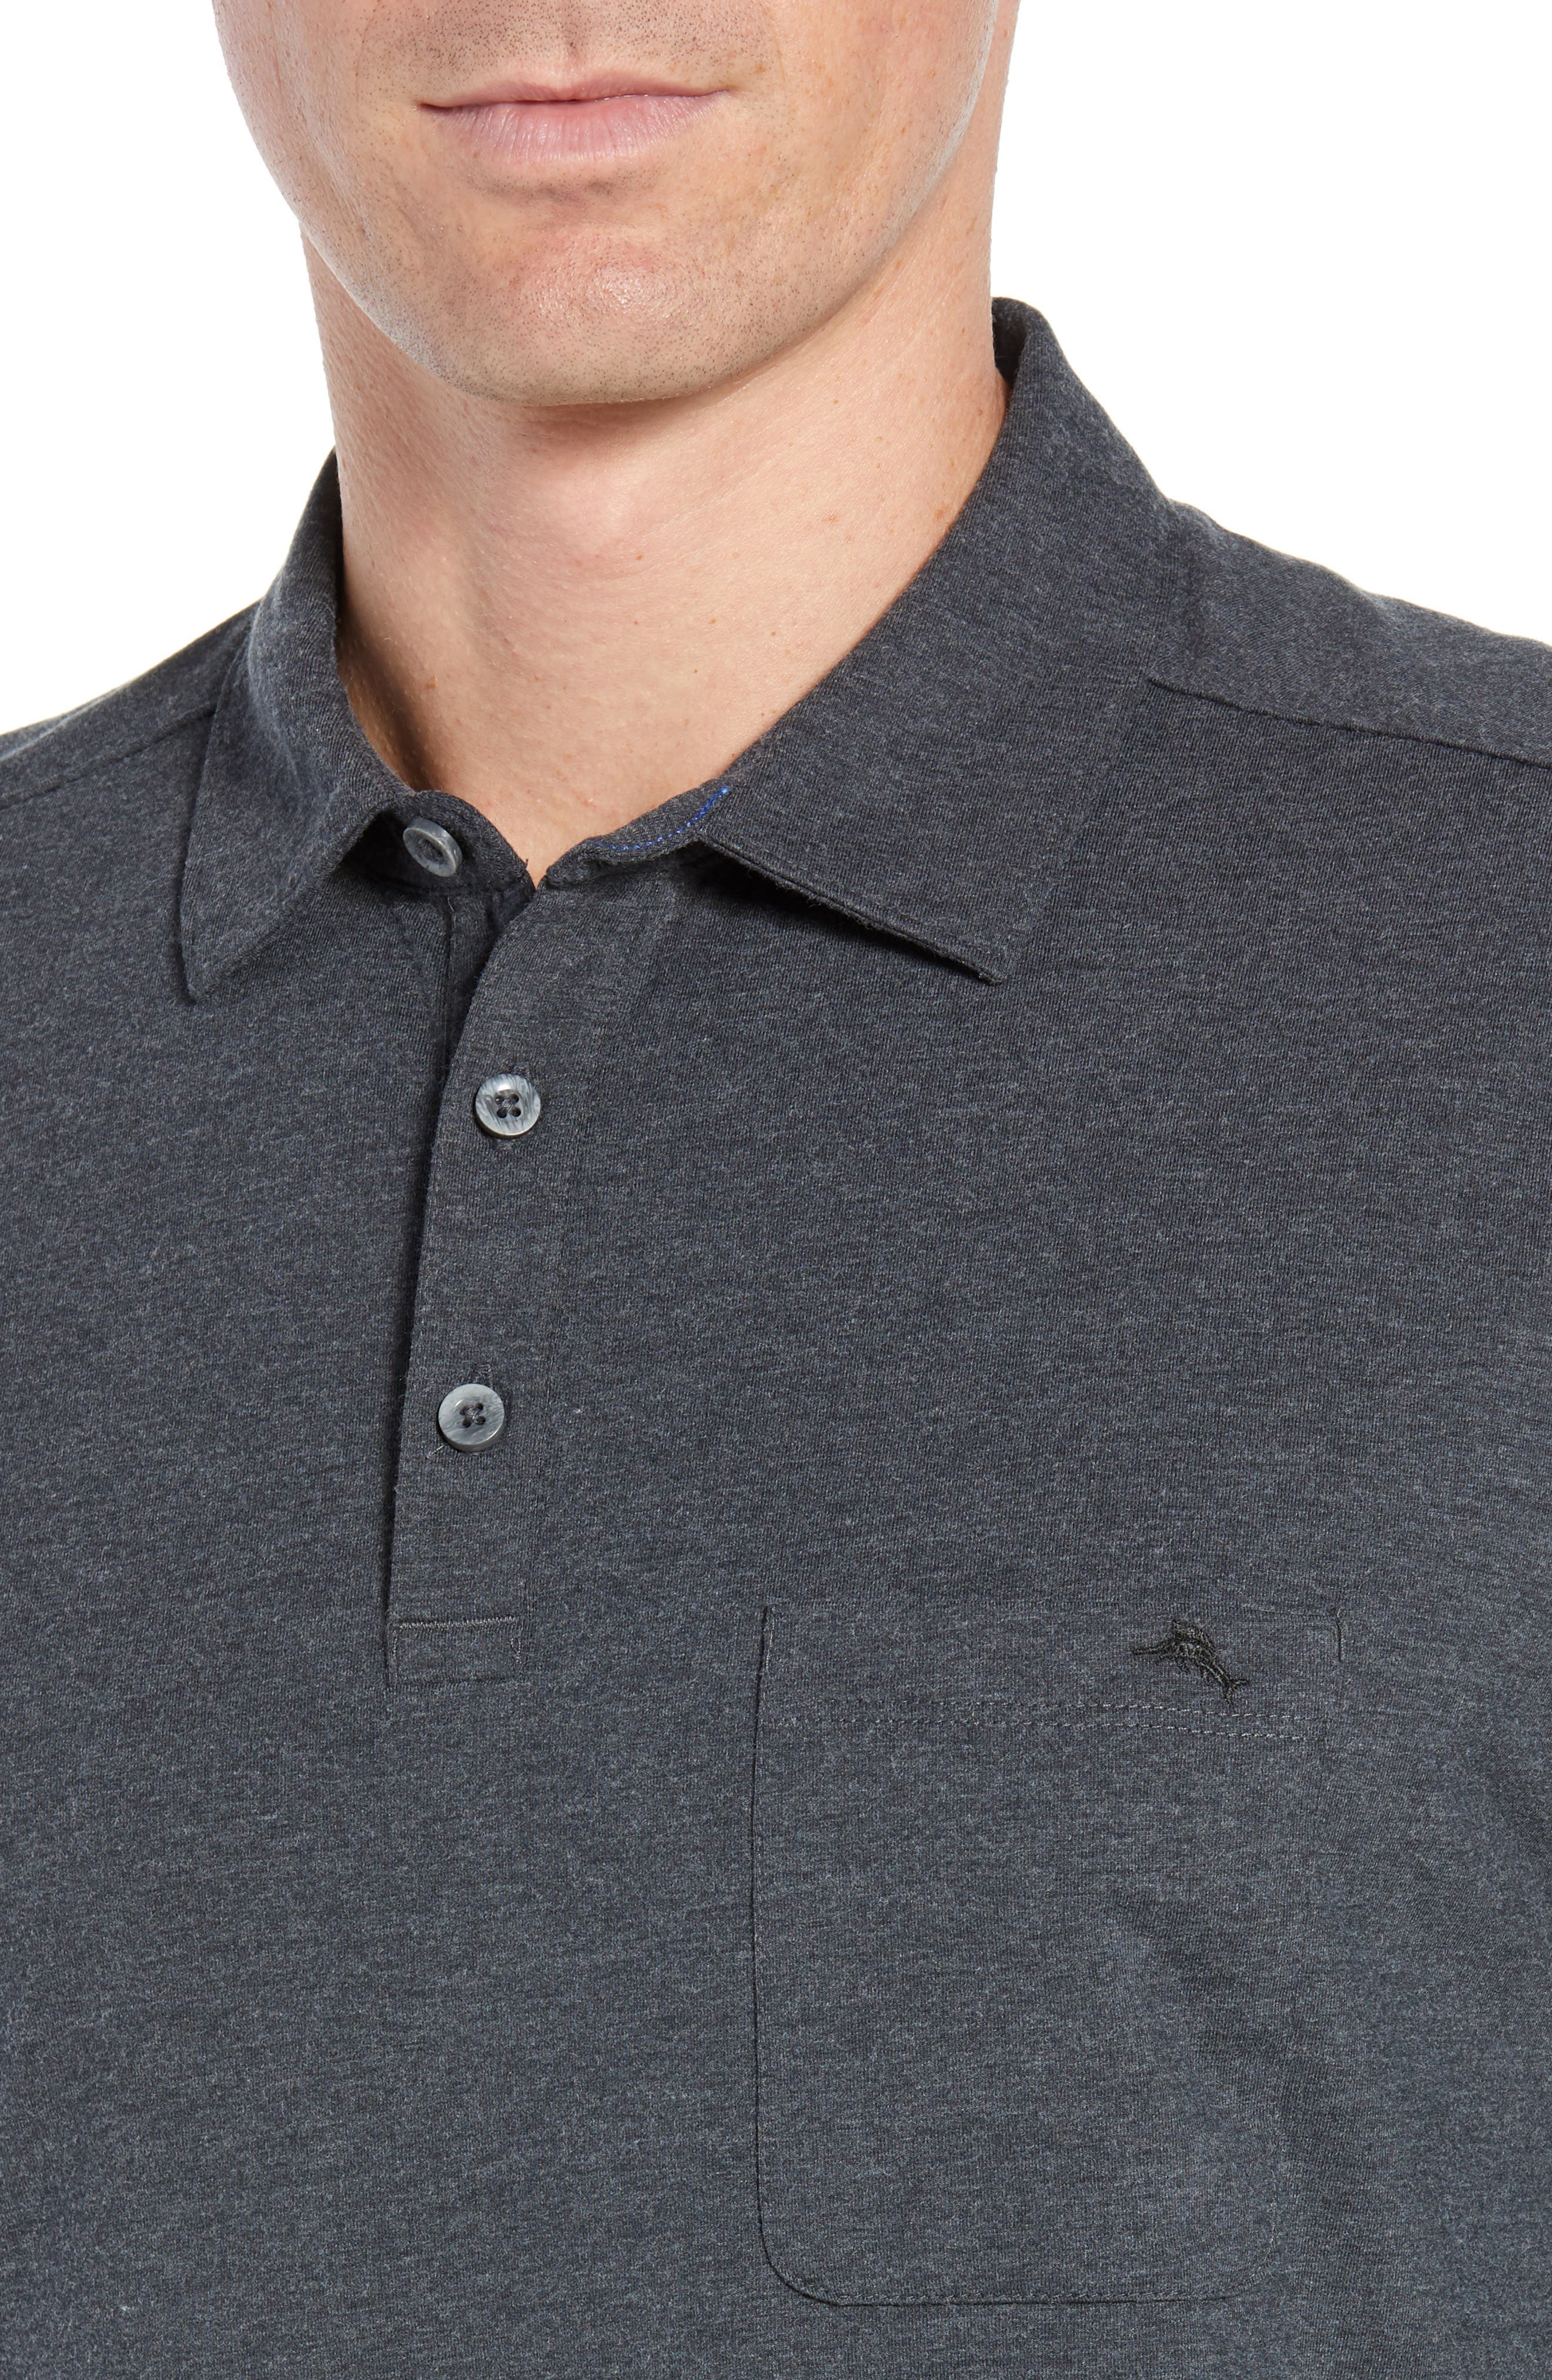 TOMMY BAHAMA, Tropicool Sueded Sands Regular Fit Polo, Alternate thumbnail 4, color, 050